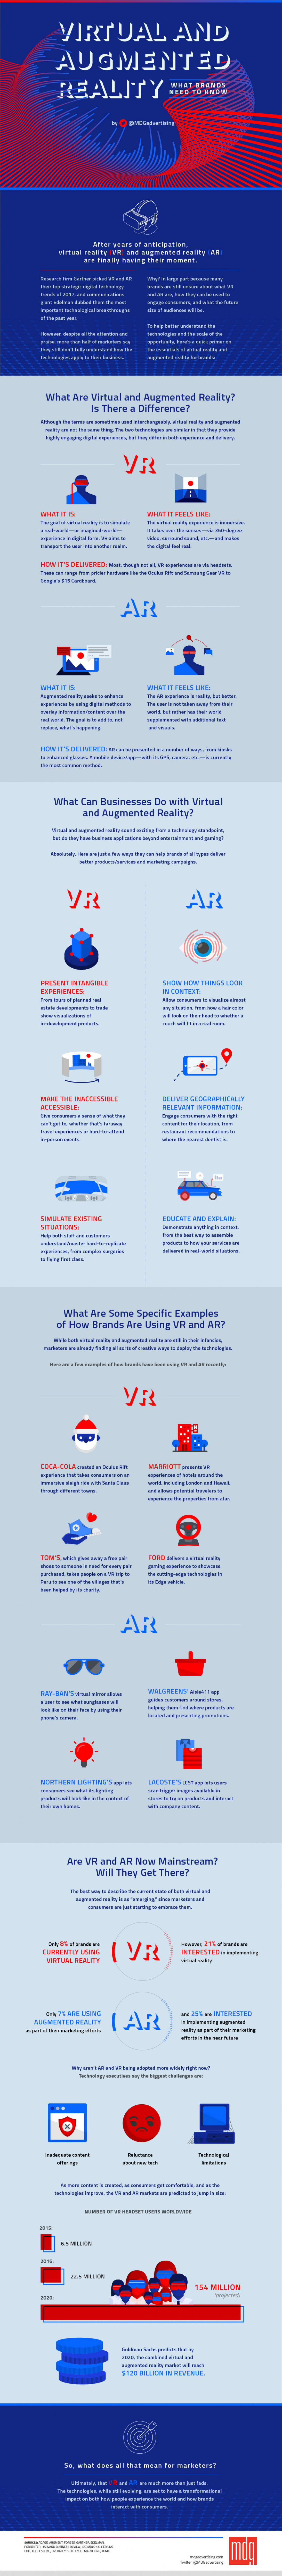 Virtual and Augmented Reality: What Brands Need to Know Infographic